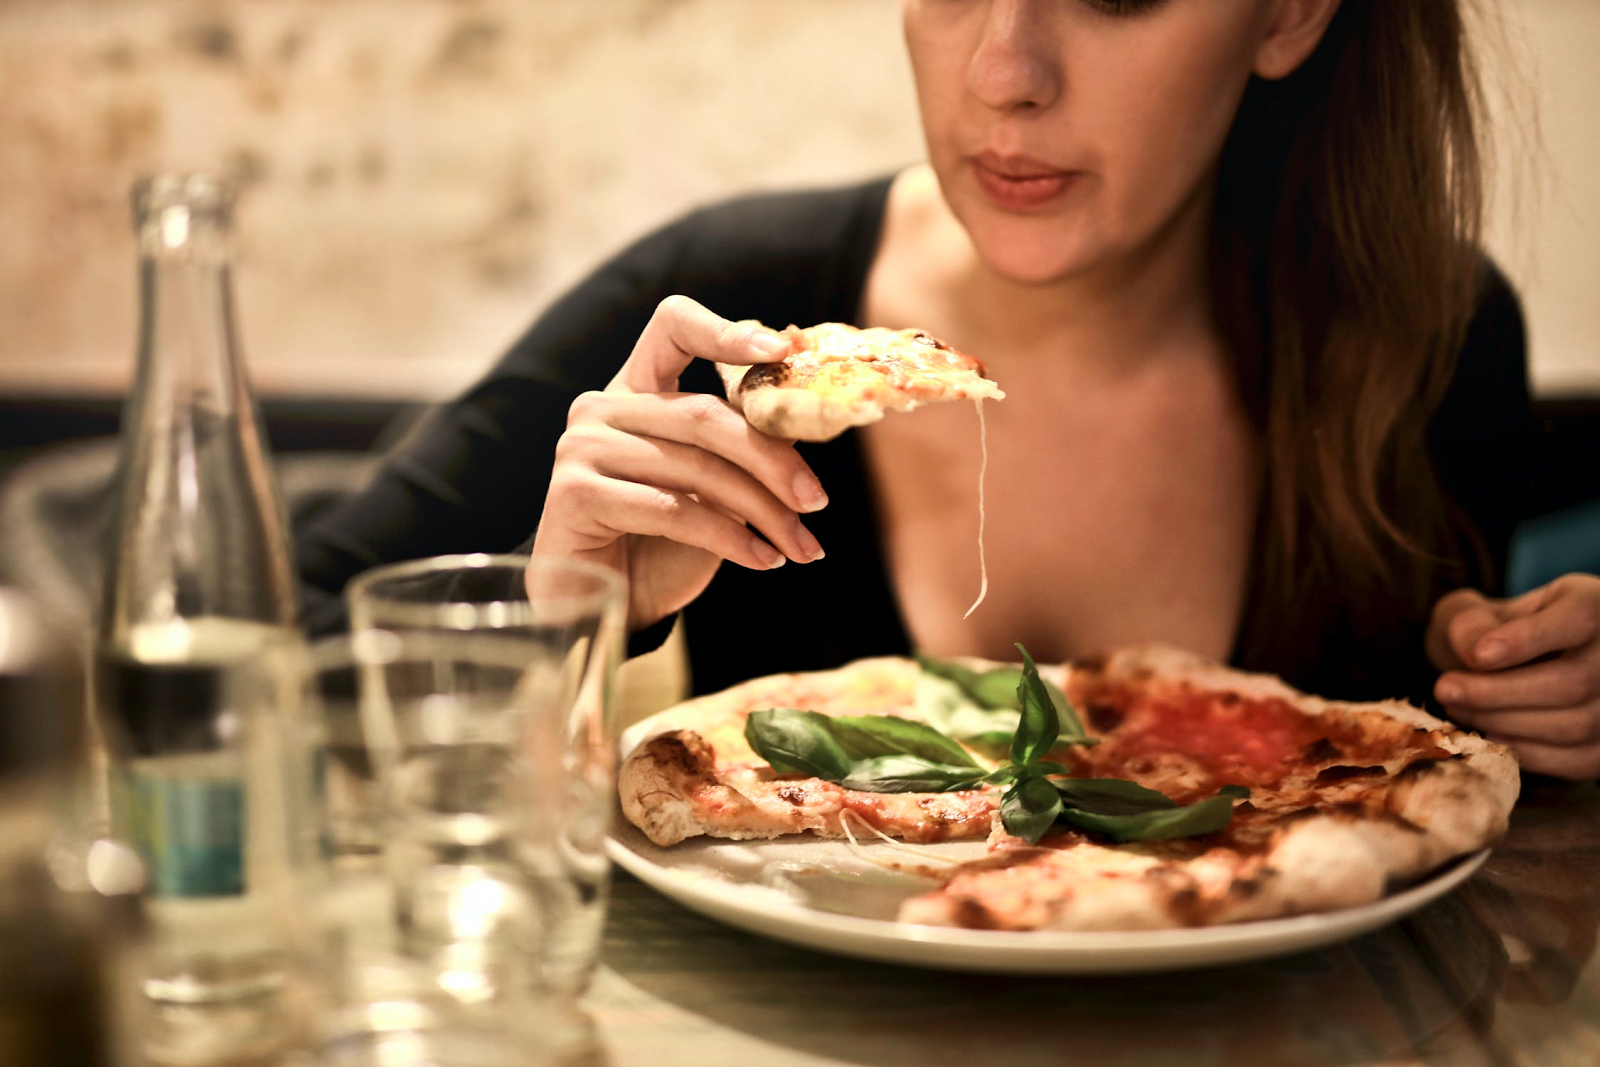 A conclusory image showing a woman enjoying a warm slice of pizza.